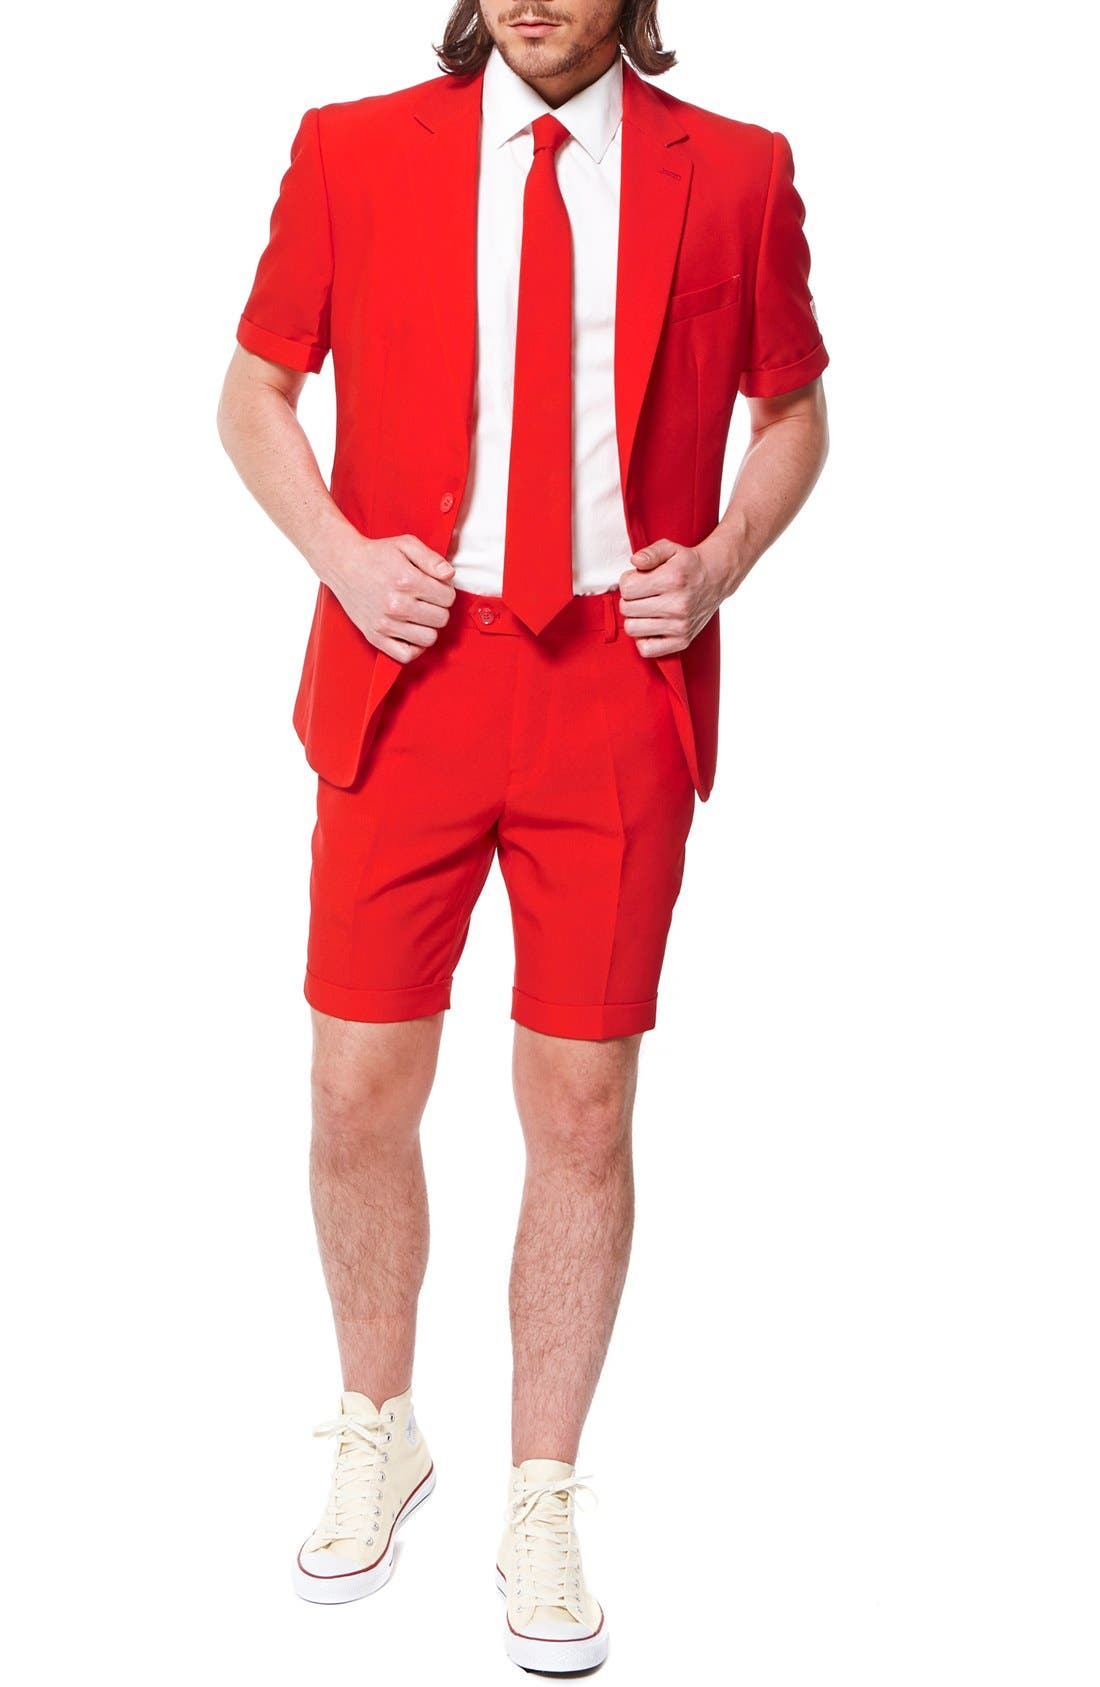 'Summer Red Devil' Trim Fit Short Suit with Tie,                         Main,                         color, Medium Red